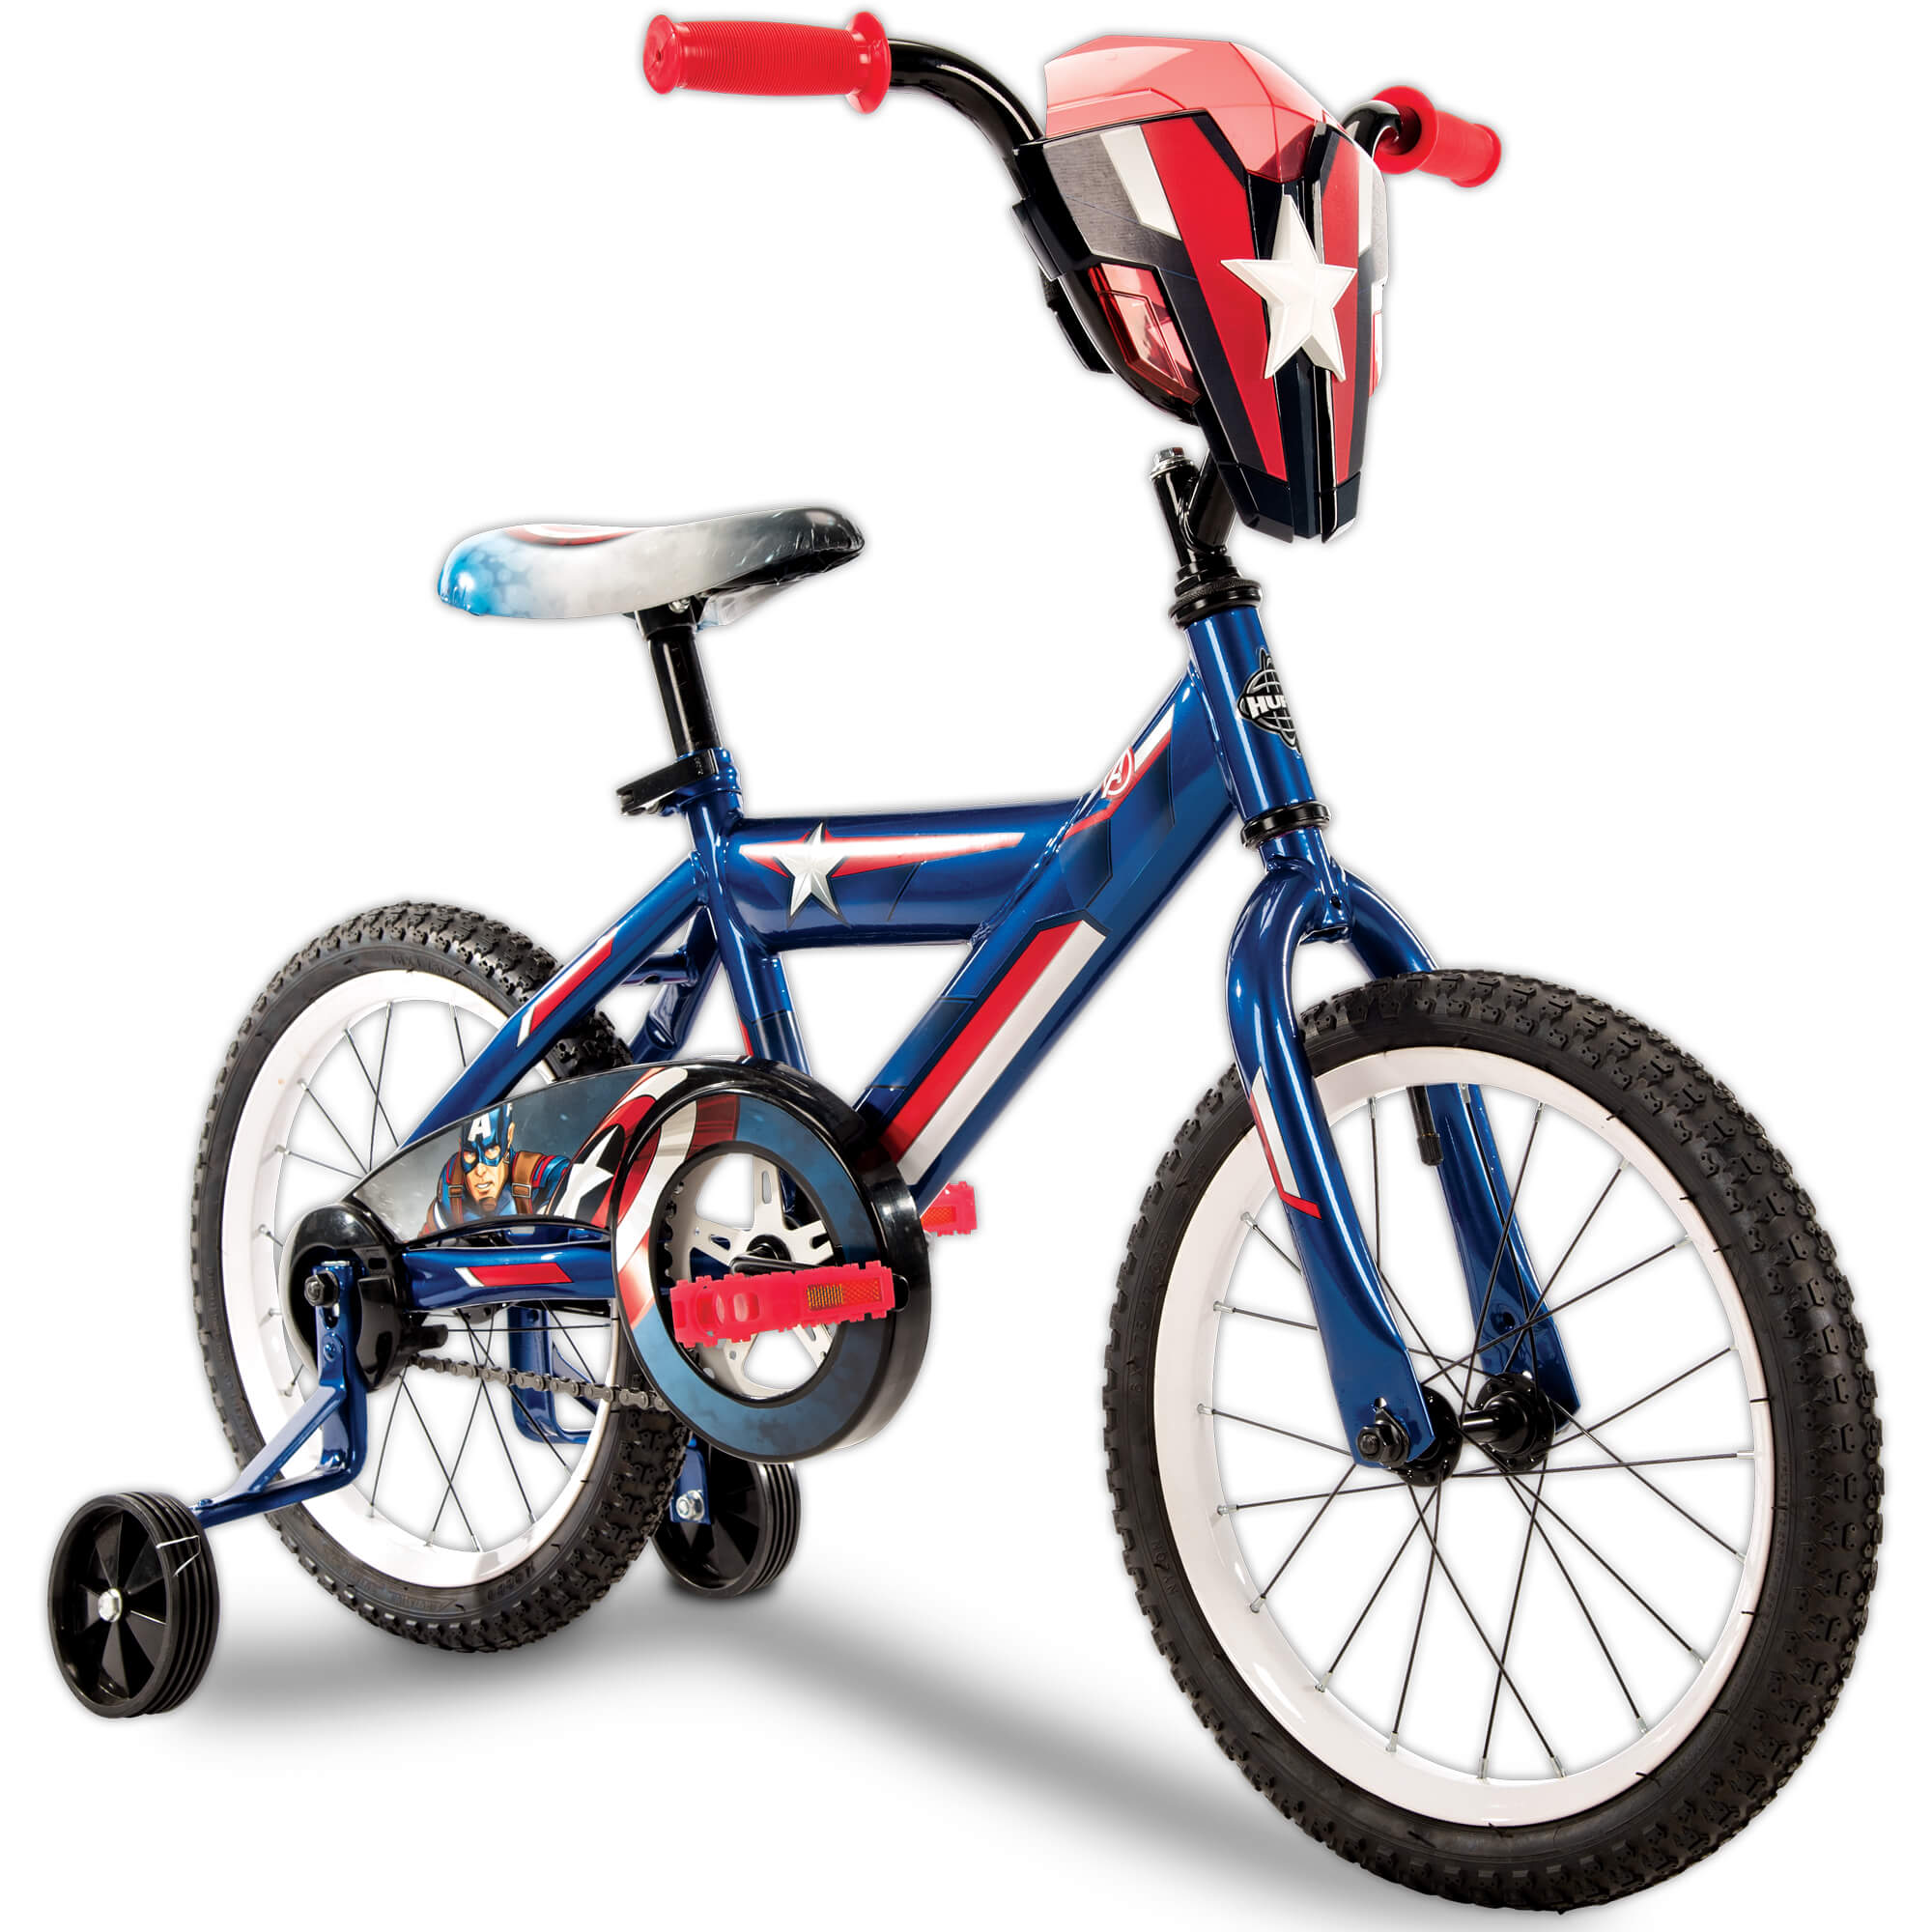 Captain America 16-inch Boys Blue and Red Bike, by Huffy